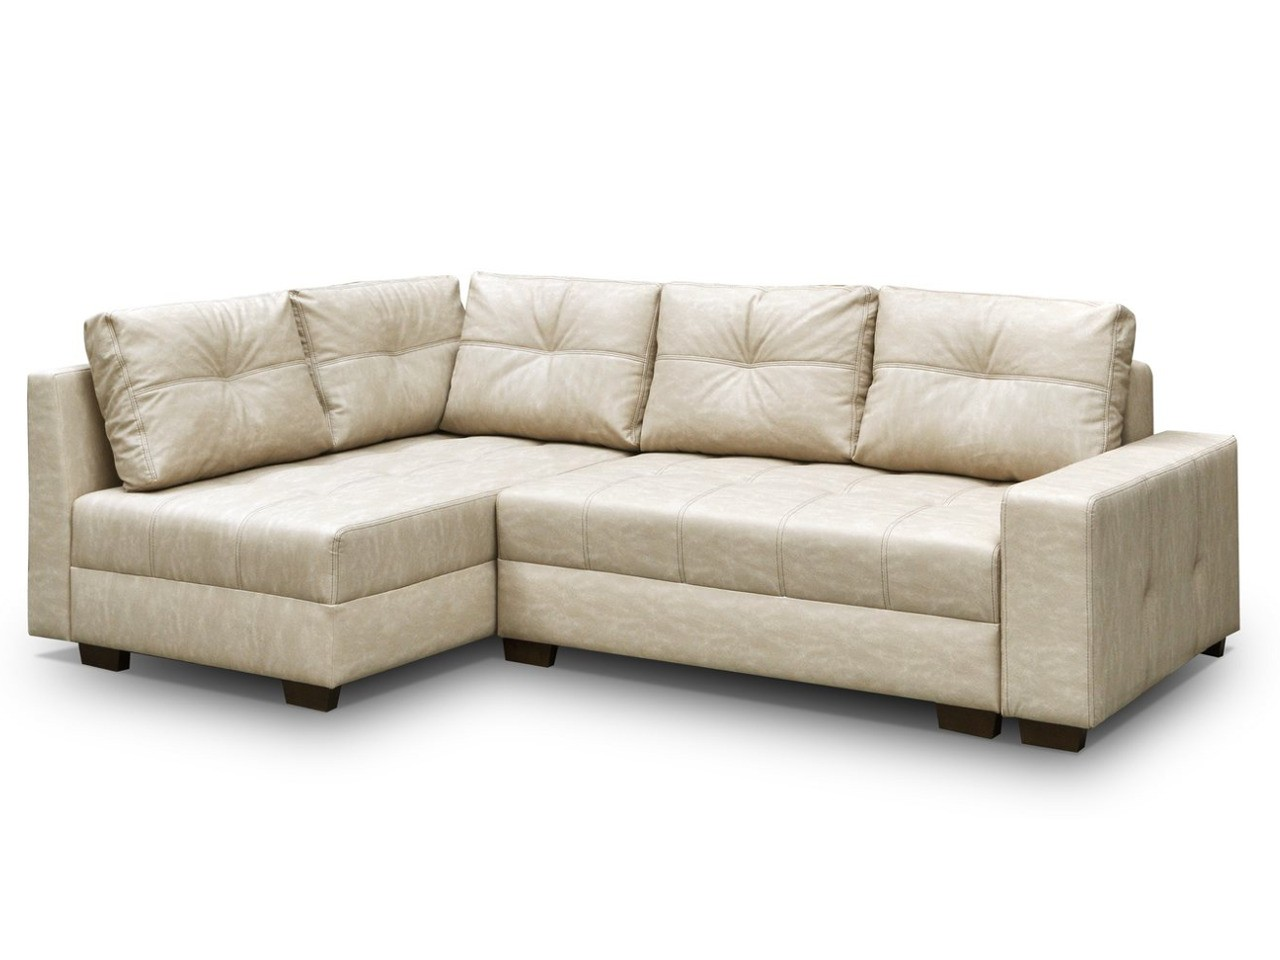 Big Sofa Mit Schlaffunktion Big Sofa Schlaffunktion Big Sofa Xxl Mit Schlaffunktion Big Sofa